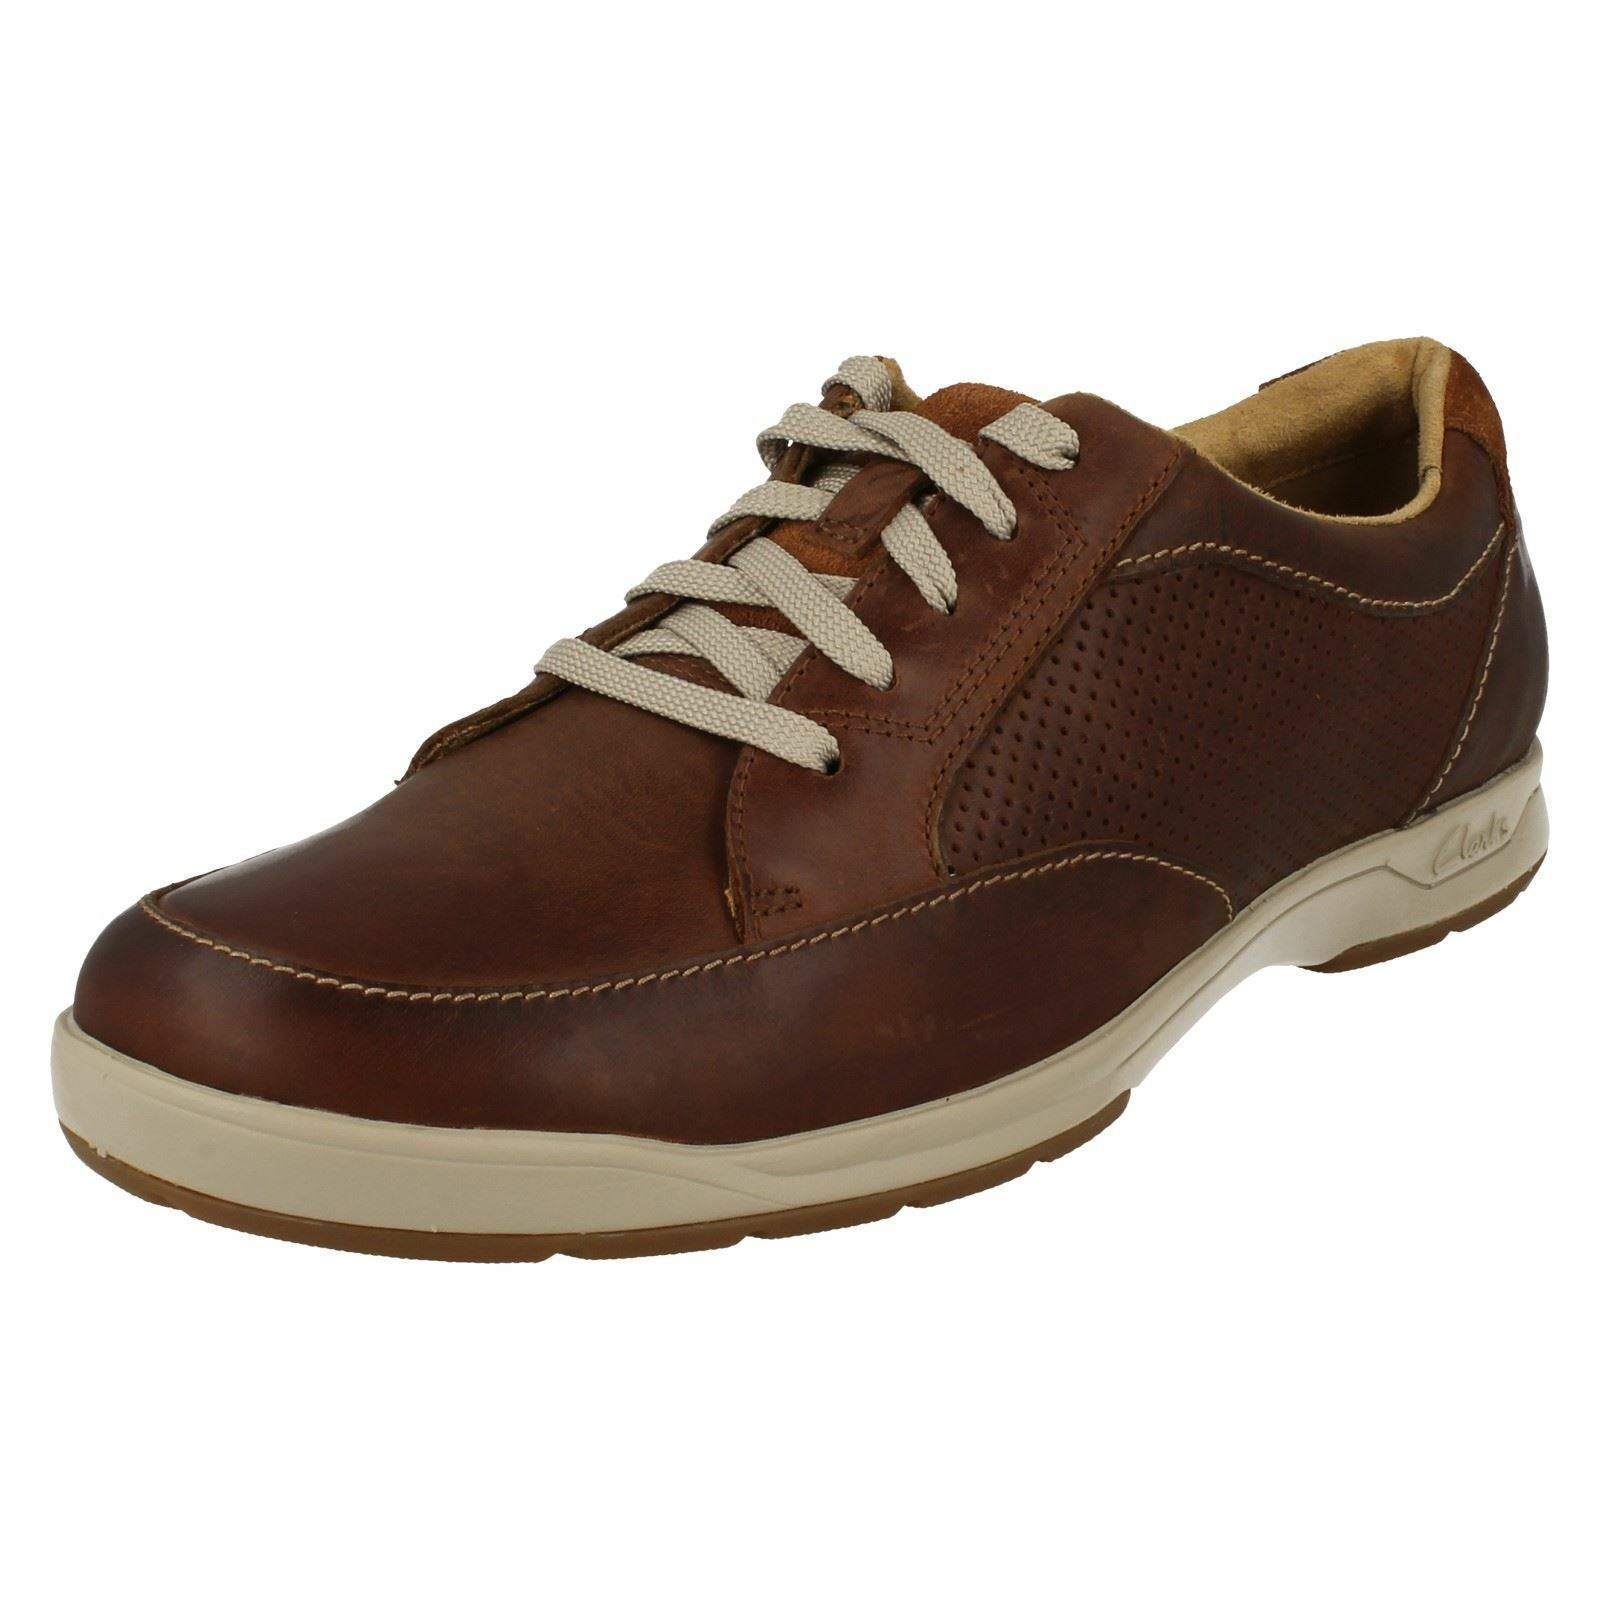 Clarks Hombre Casual Stafford Leather zapatos Stafford Casual Park 5 56b8f8